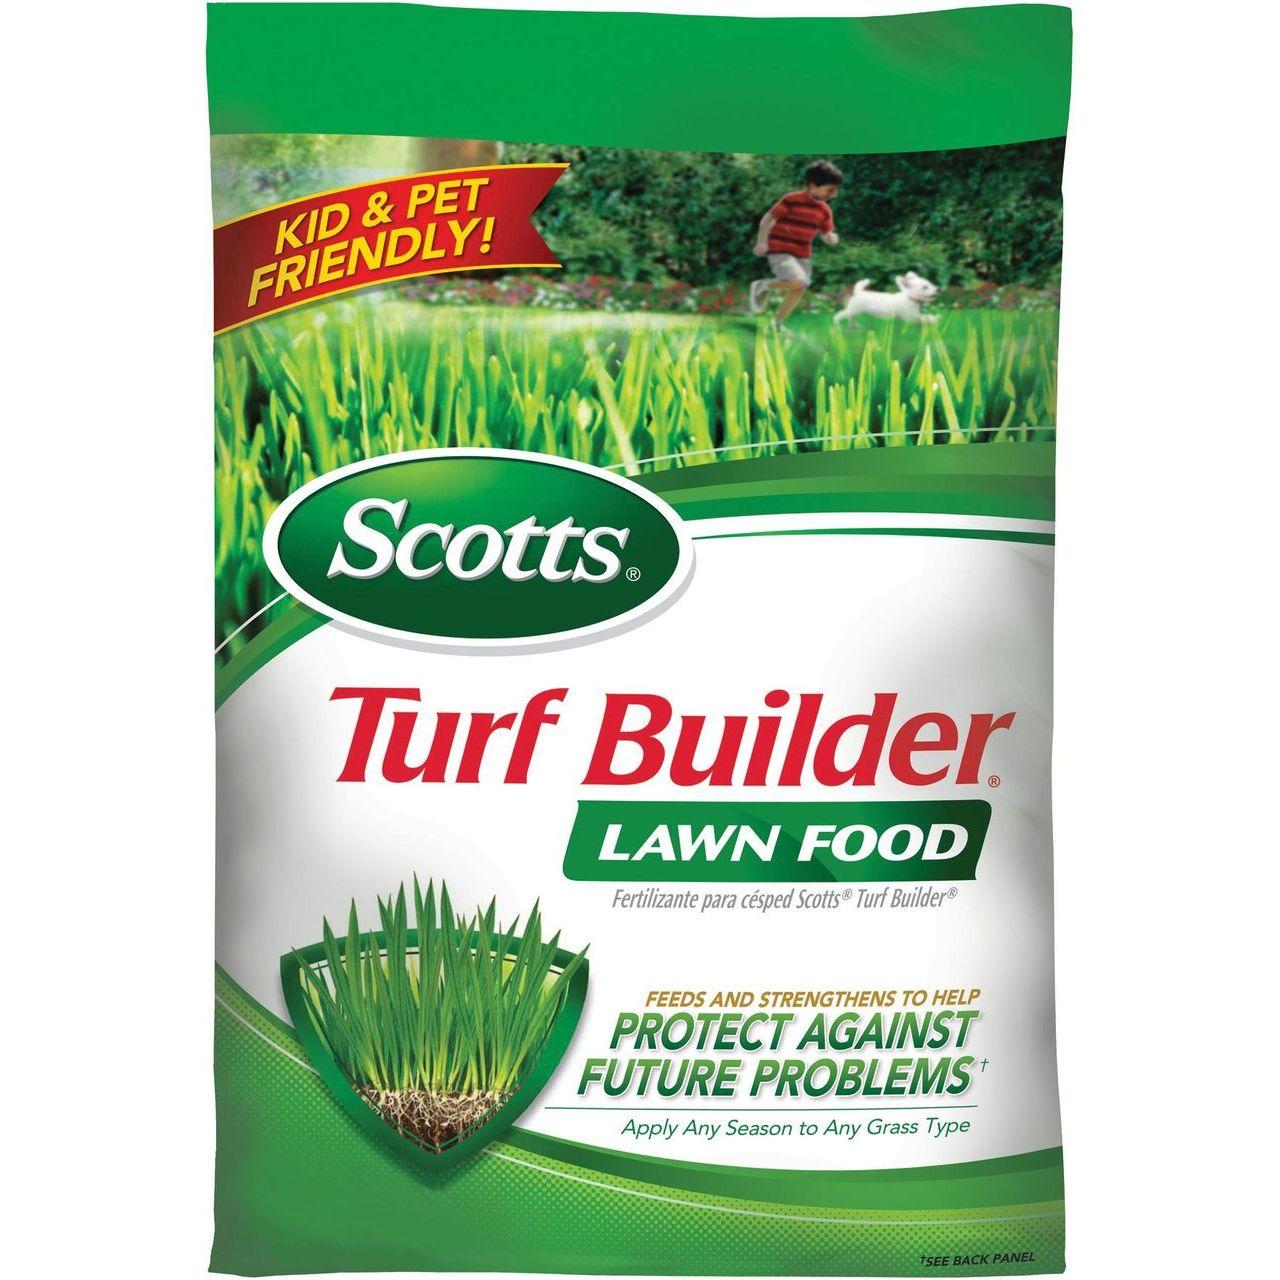 Scotts 37.5 Lbs / 15000 Sq Ft Turf Builder Lawn Food 32-0-4